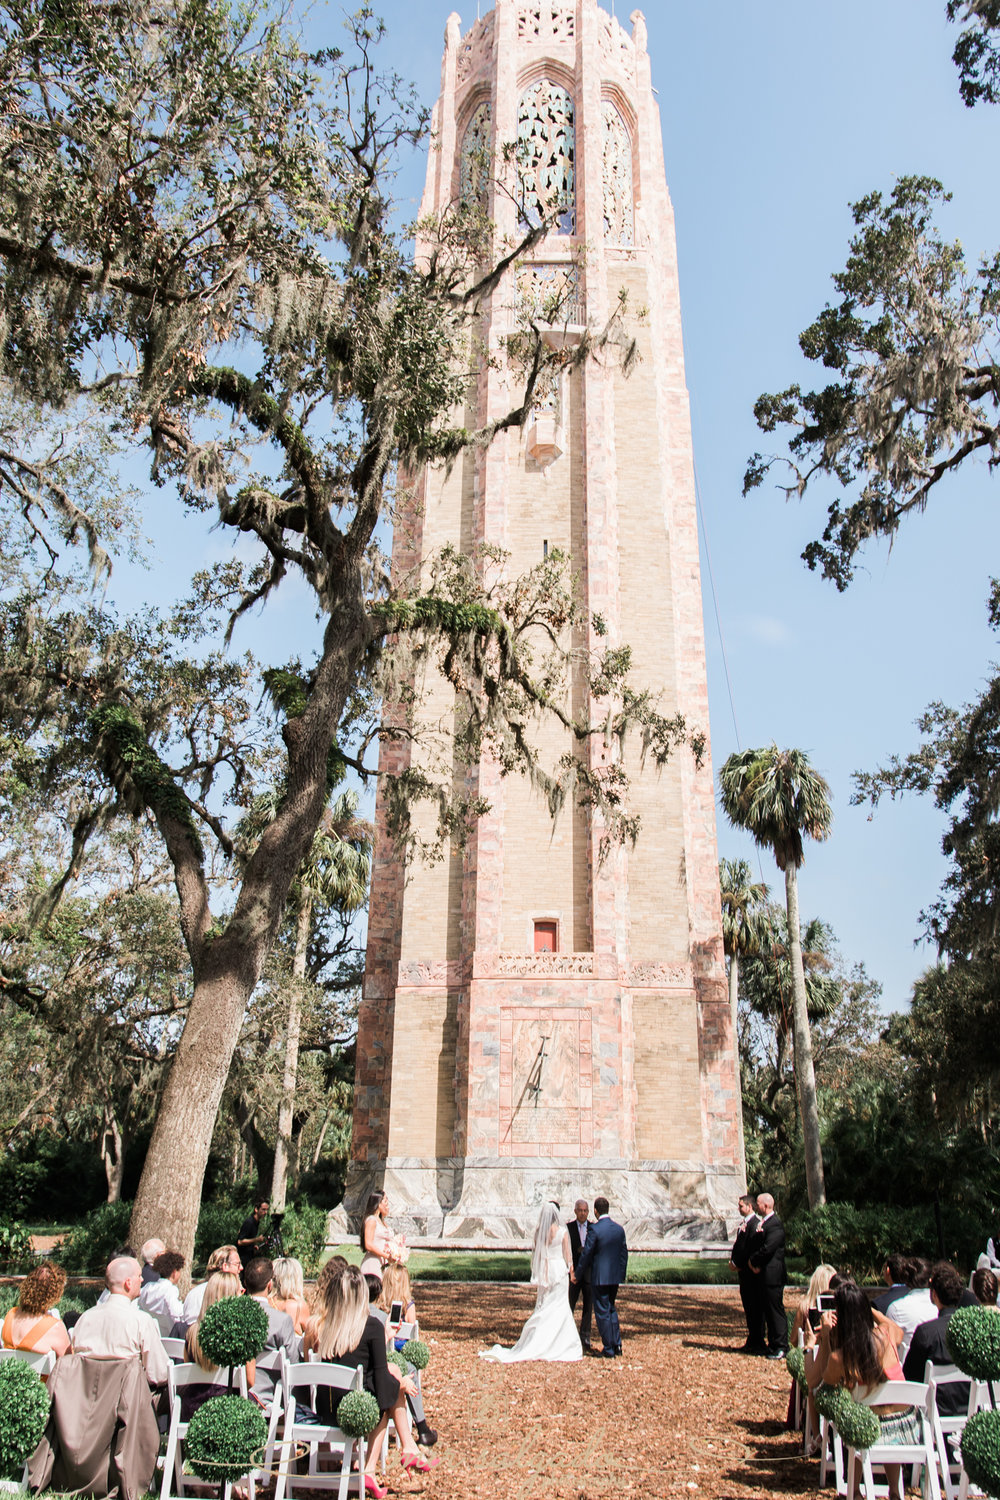 Bok-tower-gardens-wedding-photographer, Bok-tower-gardens-wedding-ceremony-photo